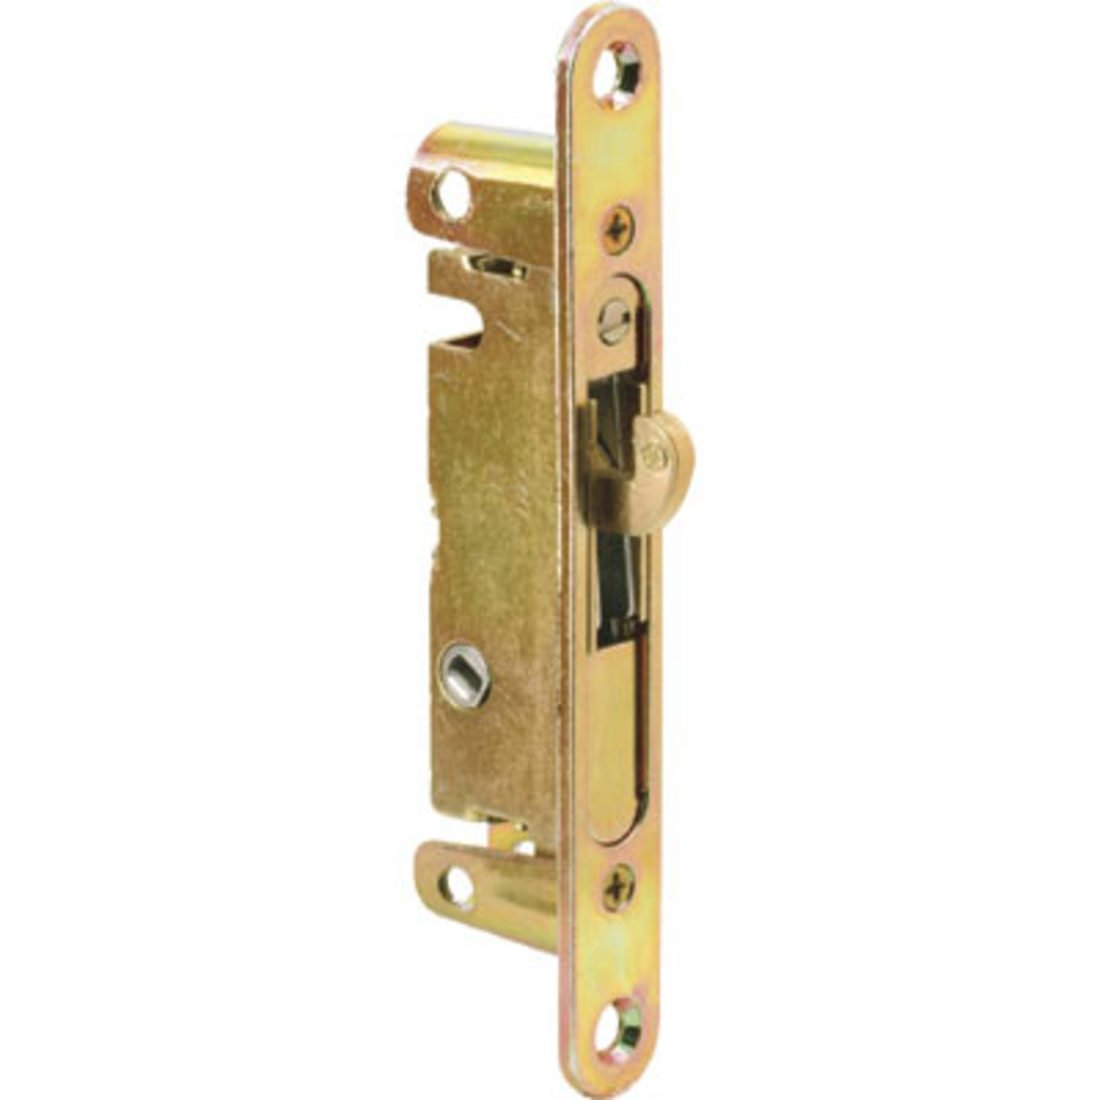 3 4 Wide Mortise Lock 5 3 8 With Screw Holes With 45 Degree Keyway